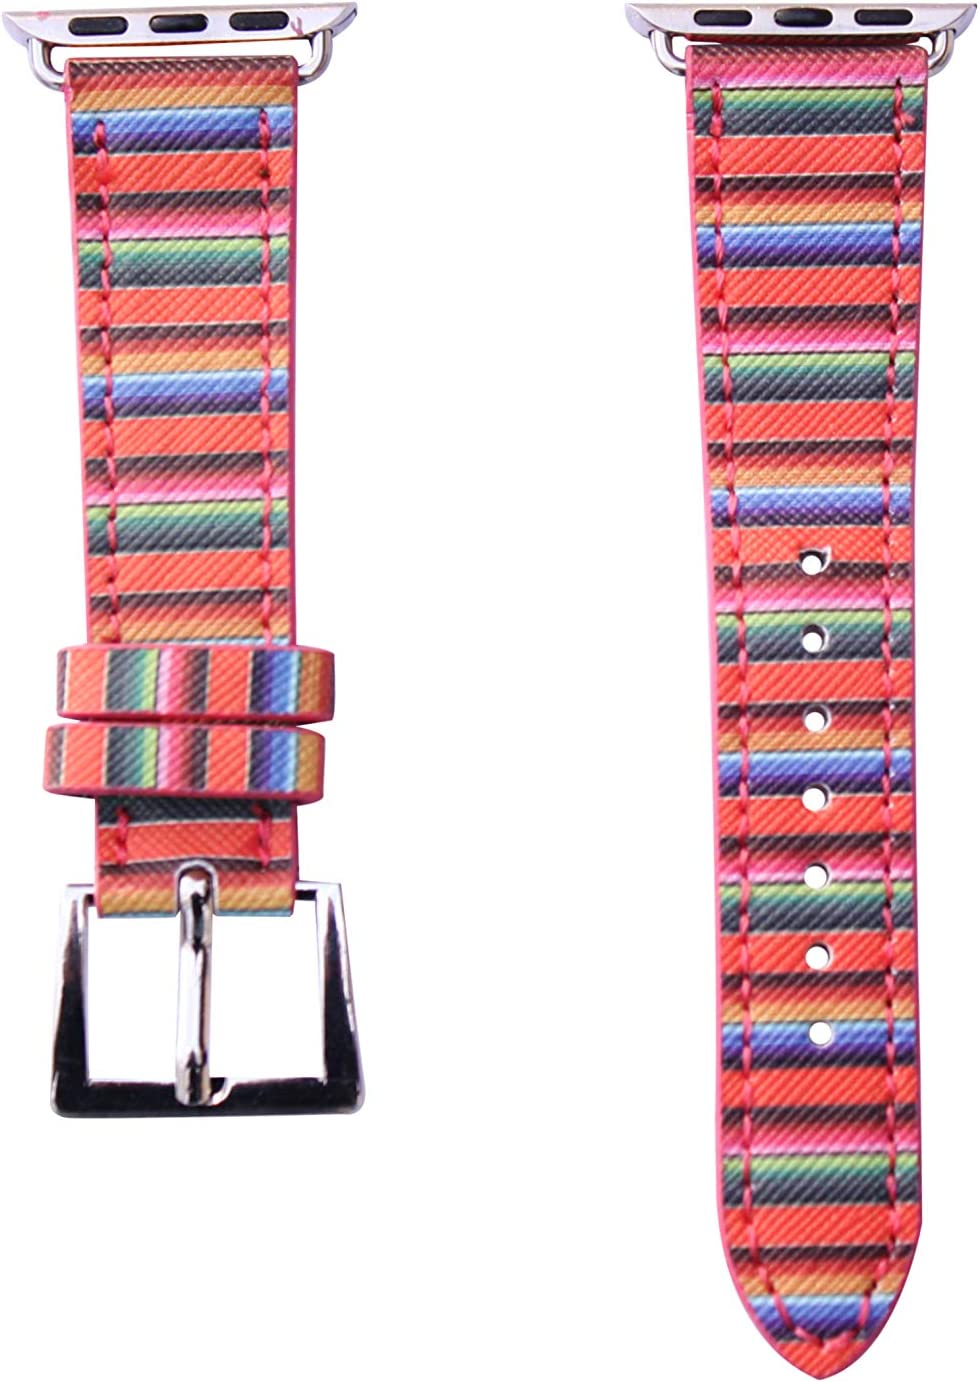 40mm/38mm Compatible for Apple Watch Series 5 Small Version, Series 4 Small Version, Series 3 Vivid Serape Watch Band No. 15SE